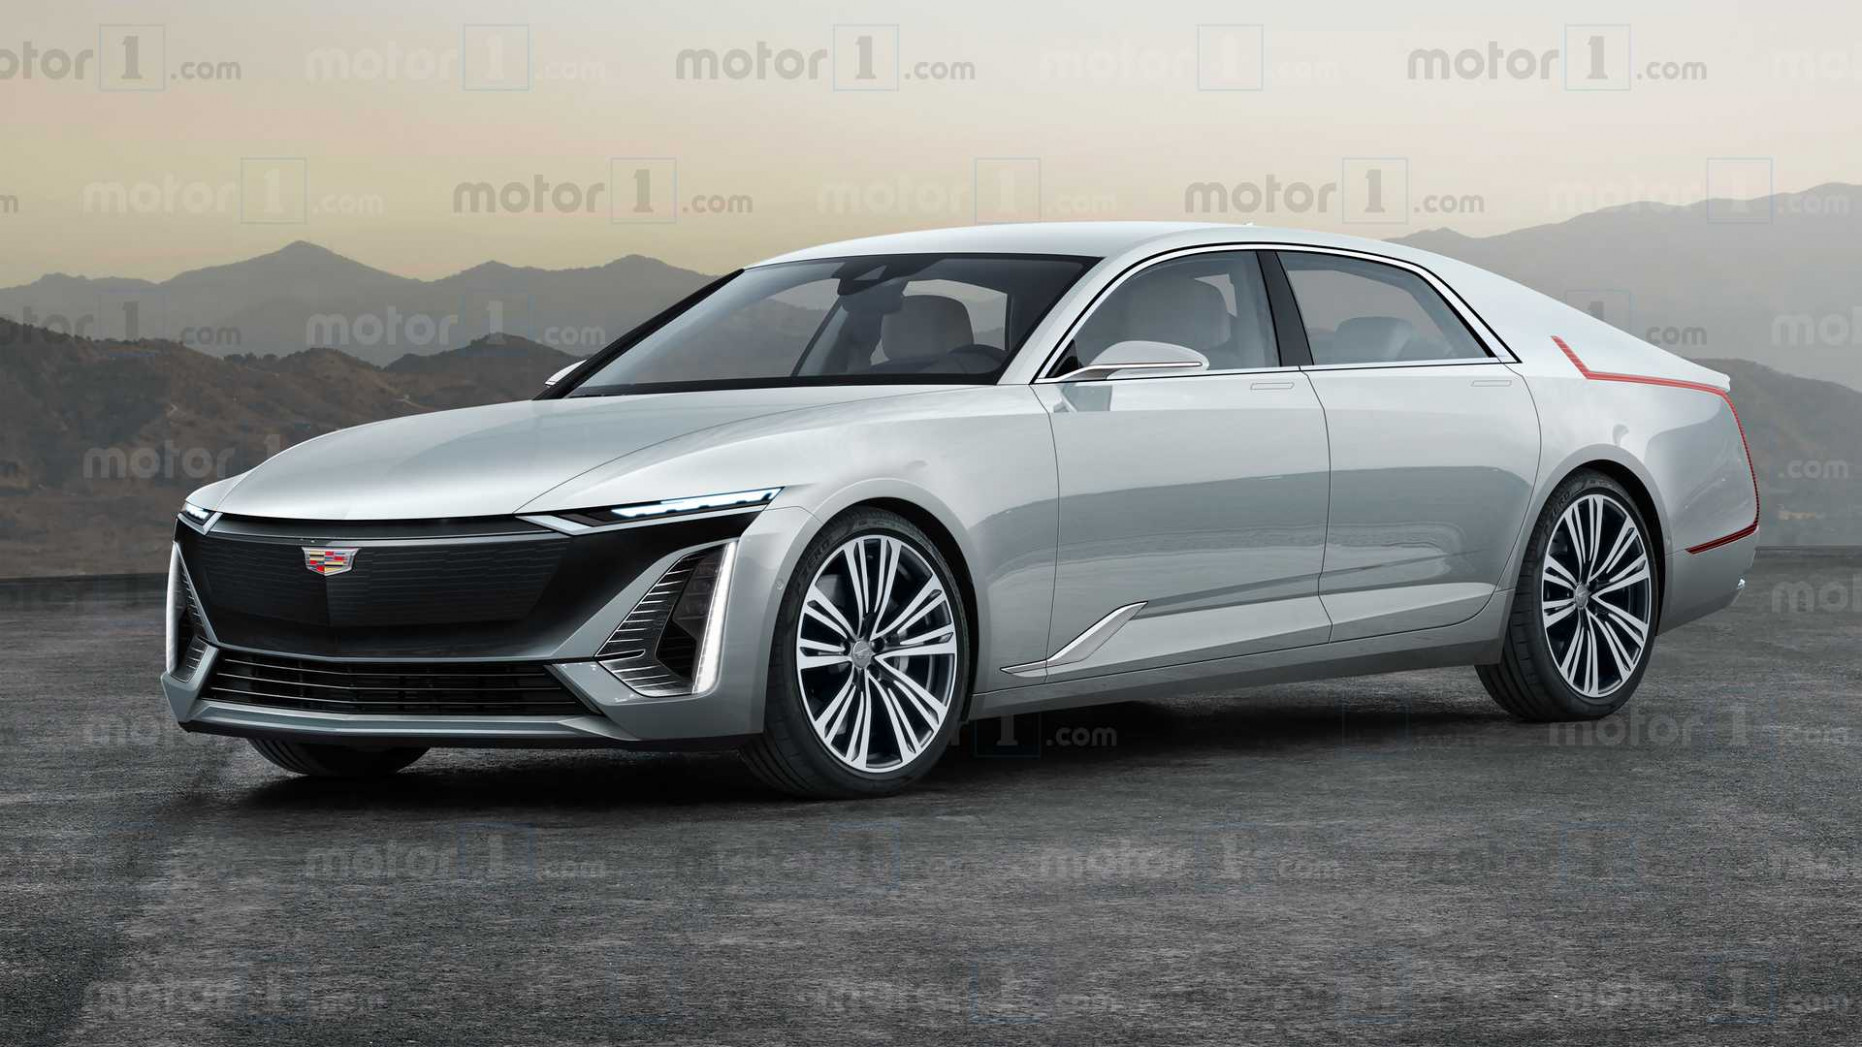 Configurations New Cadillac Sedans For 2022